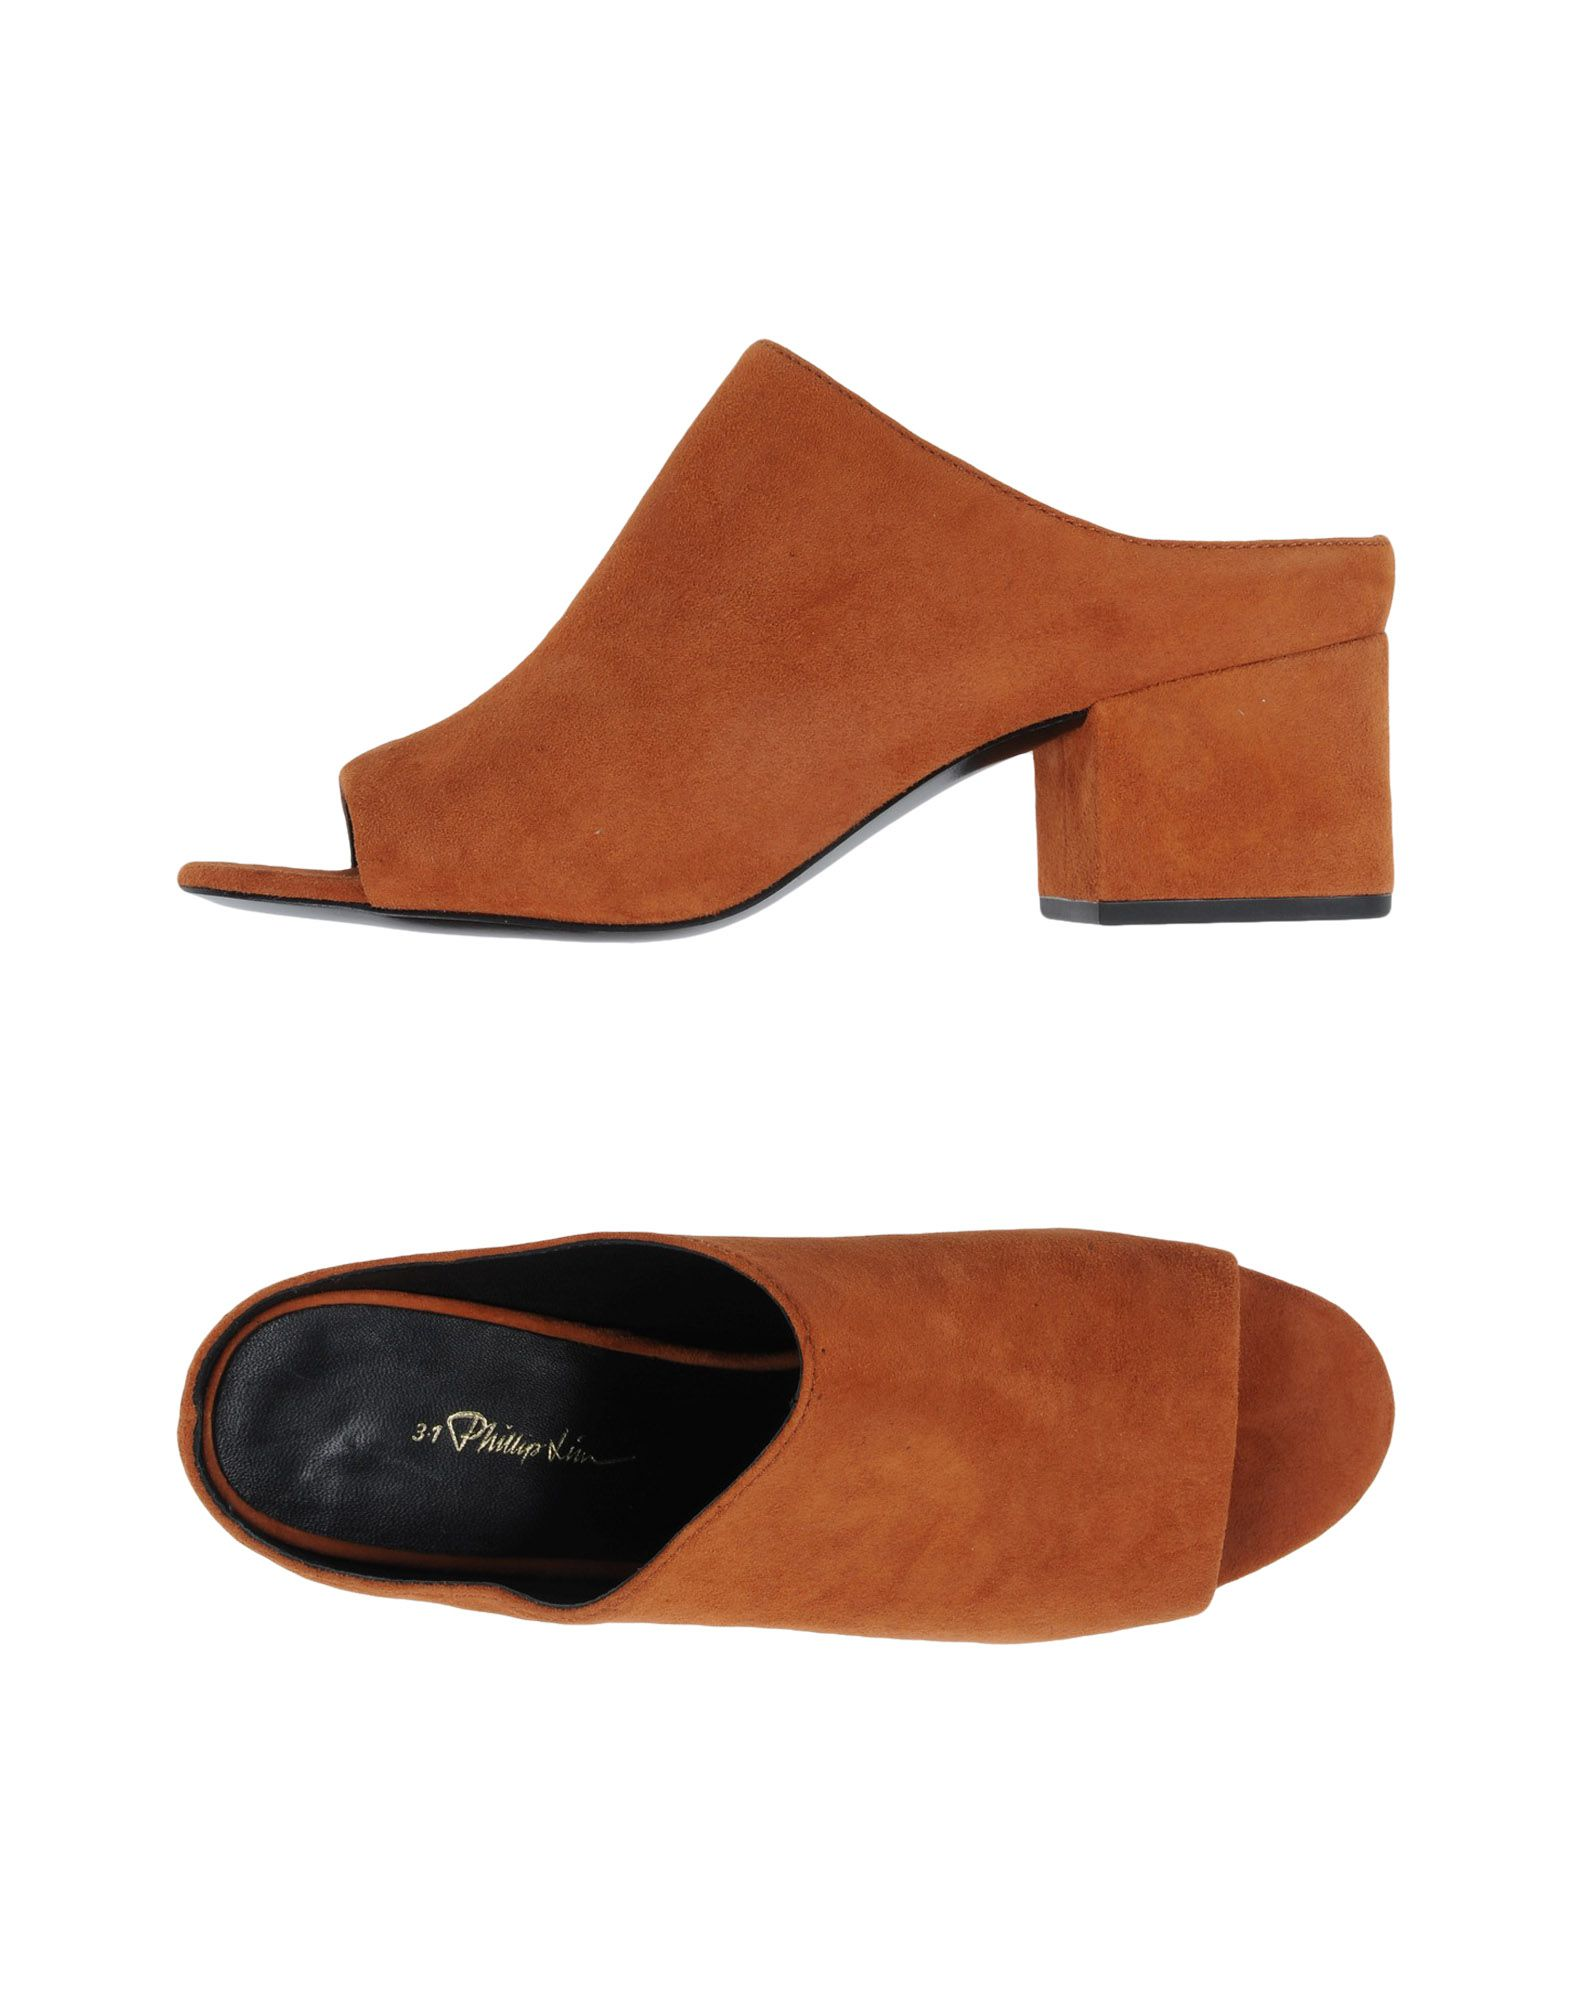 3.1 Phillip Lim Open-Toe Mules - Women 3.1 Phillip Lim  Open-Toe Mules online on  Lim United Kingdom - 11439210IB 832105